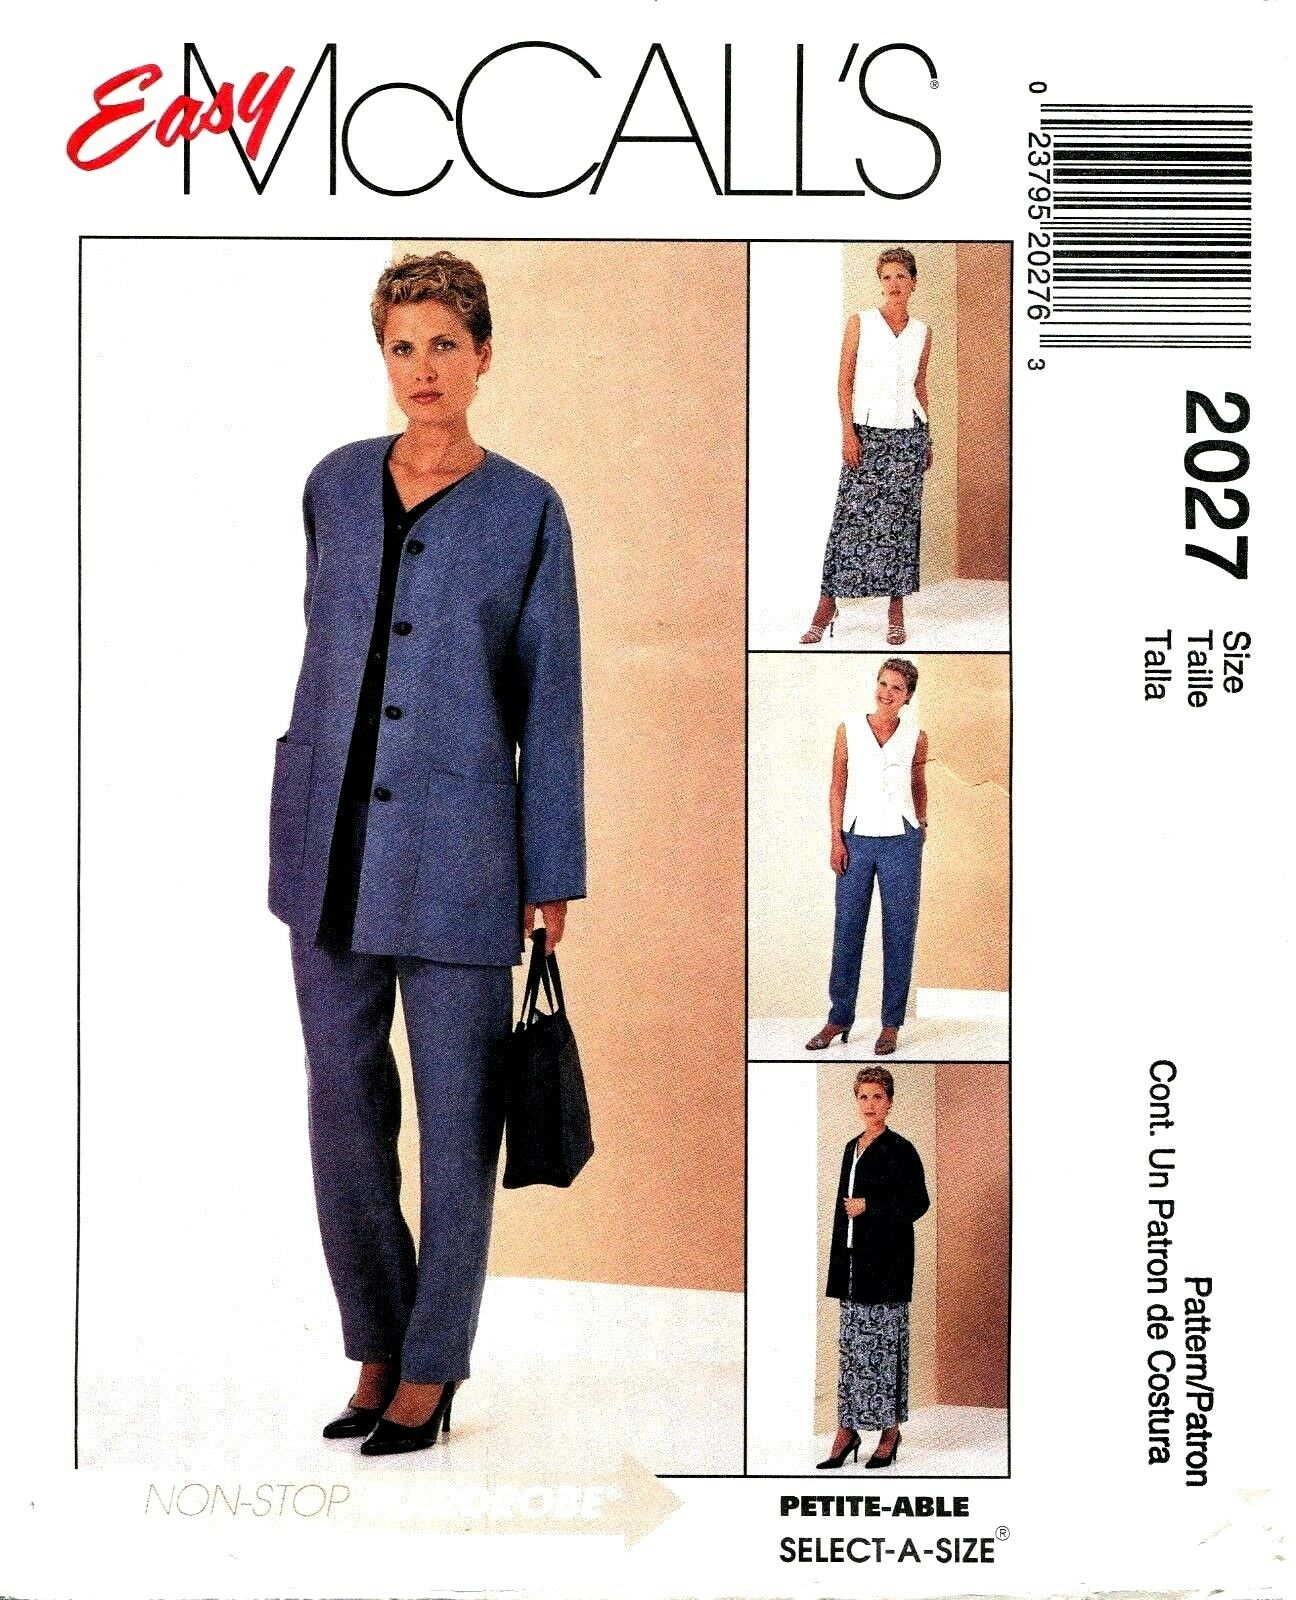 Mccalls 2027 misses easy cardigan top pants skirt sewing pattern picture 1 of 2 jeuxipadfo Images